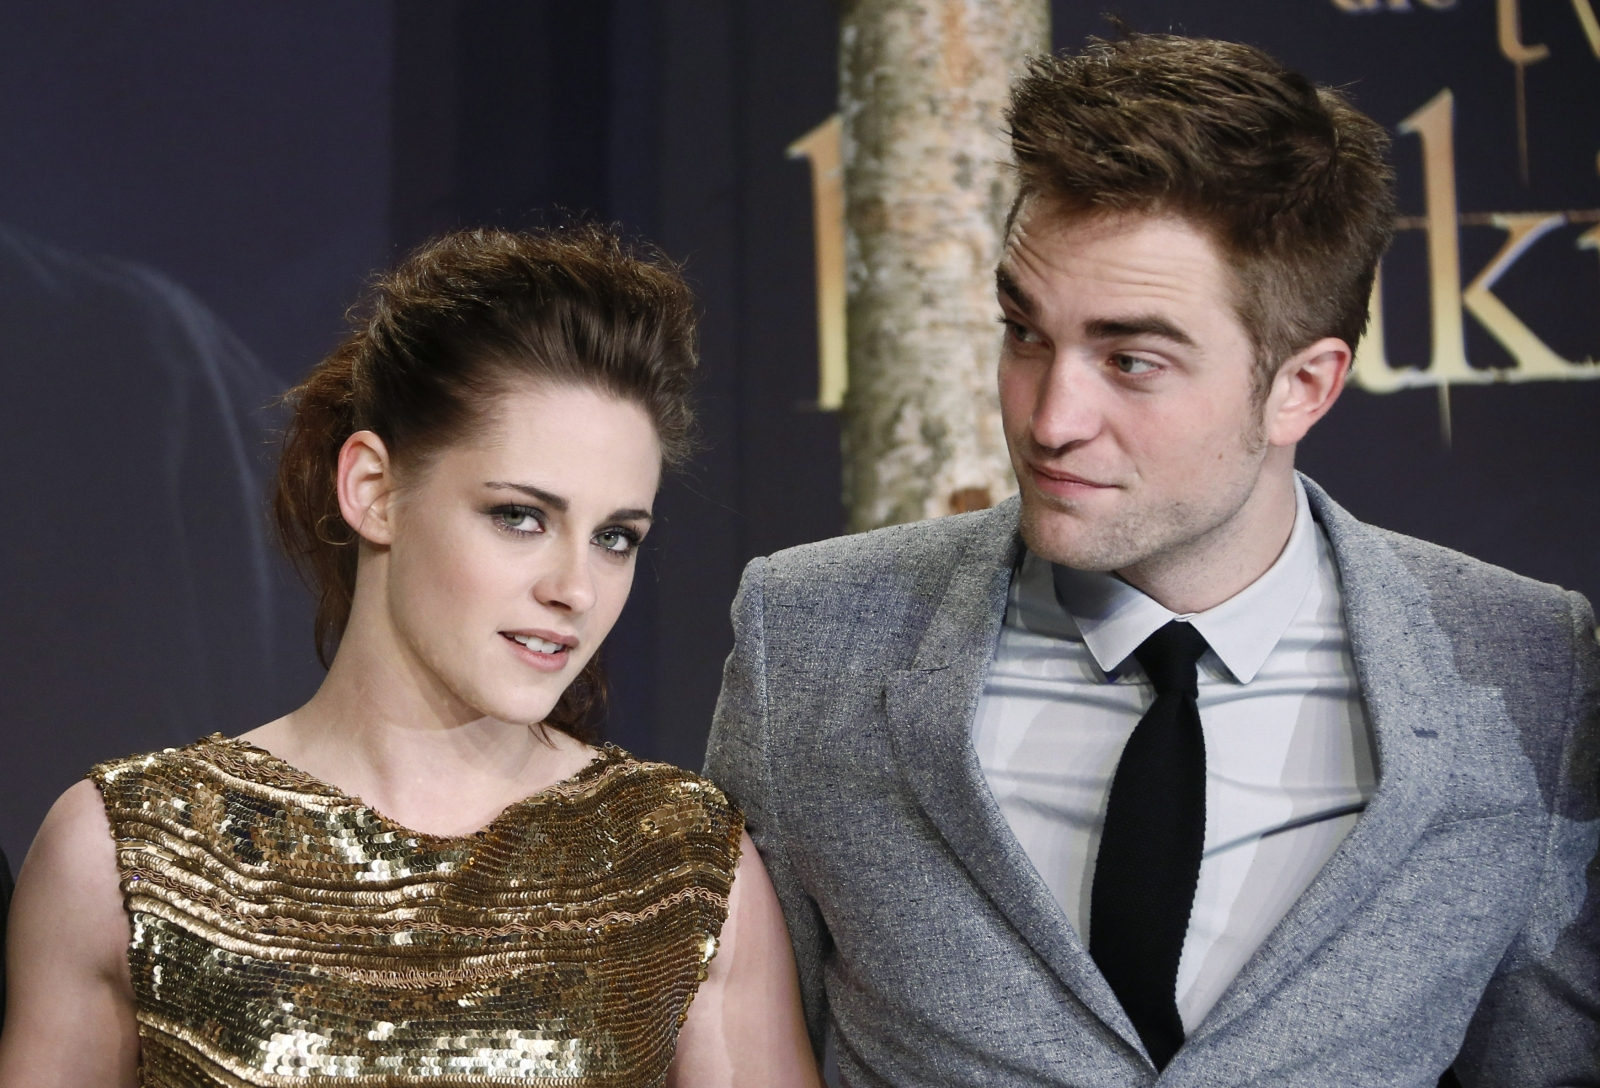 Robert Pattinson Girlfriends Who is Robert Dating Now